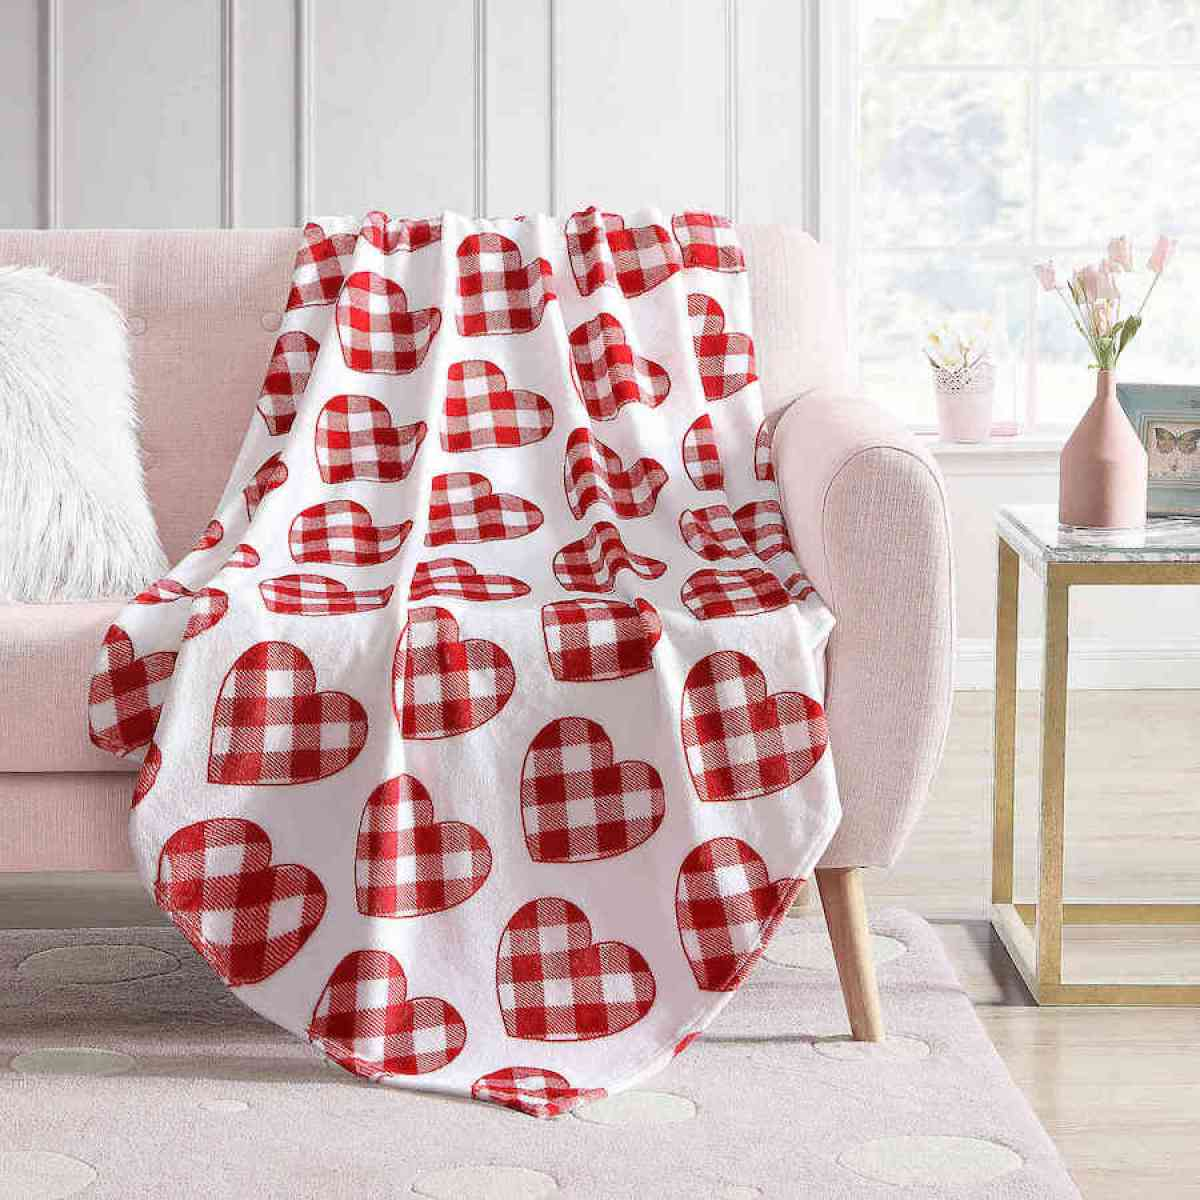 Heart Throw Blanket on couch